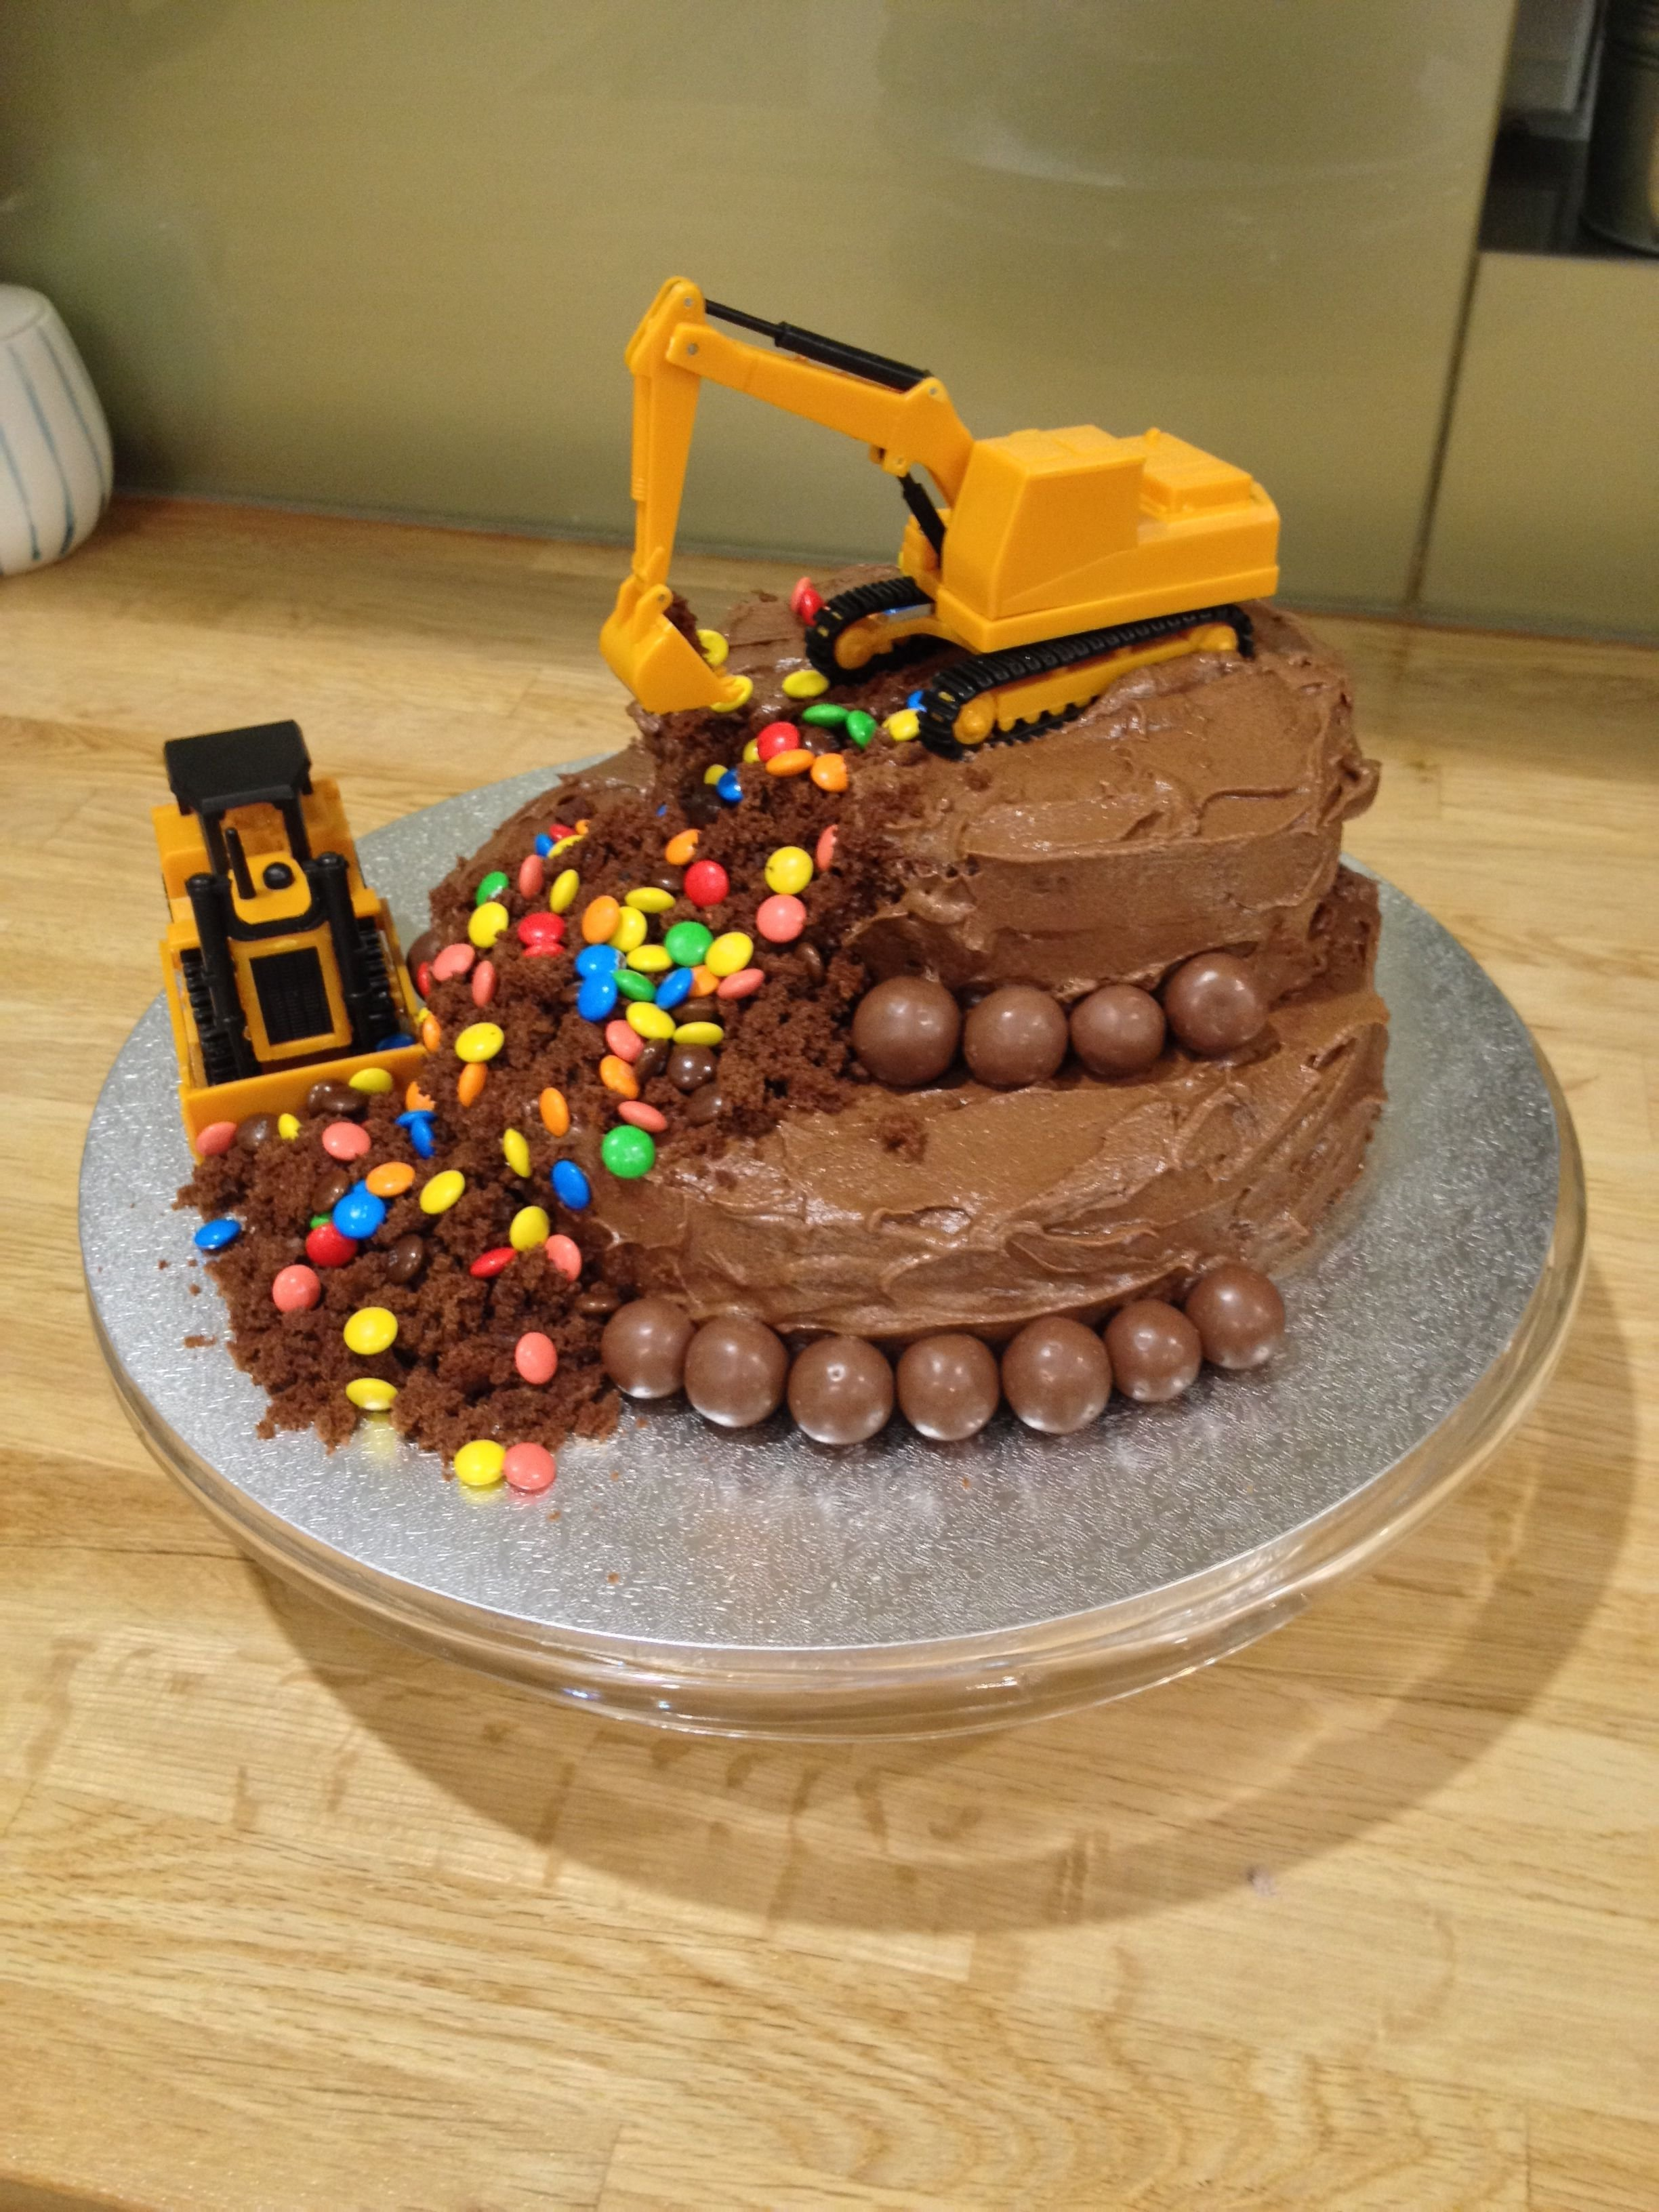 10 Fantastic 3 Year Old Birthday Cake Ideas construction theme cake for my 3 year old boy who loves mms